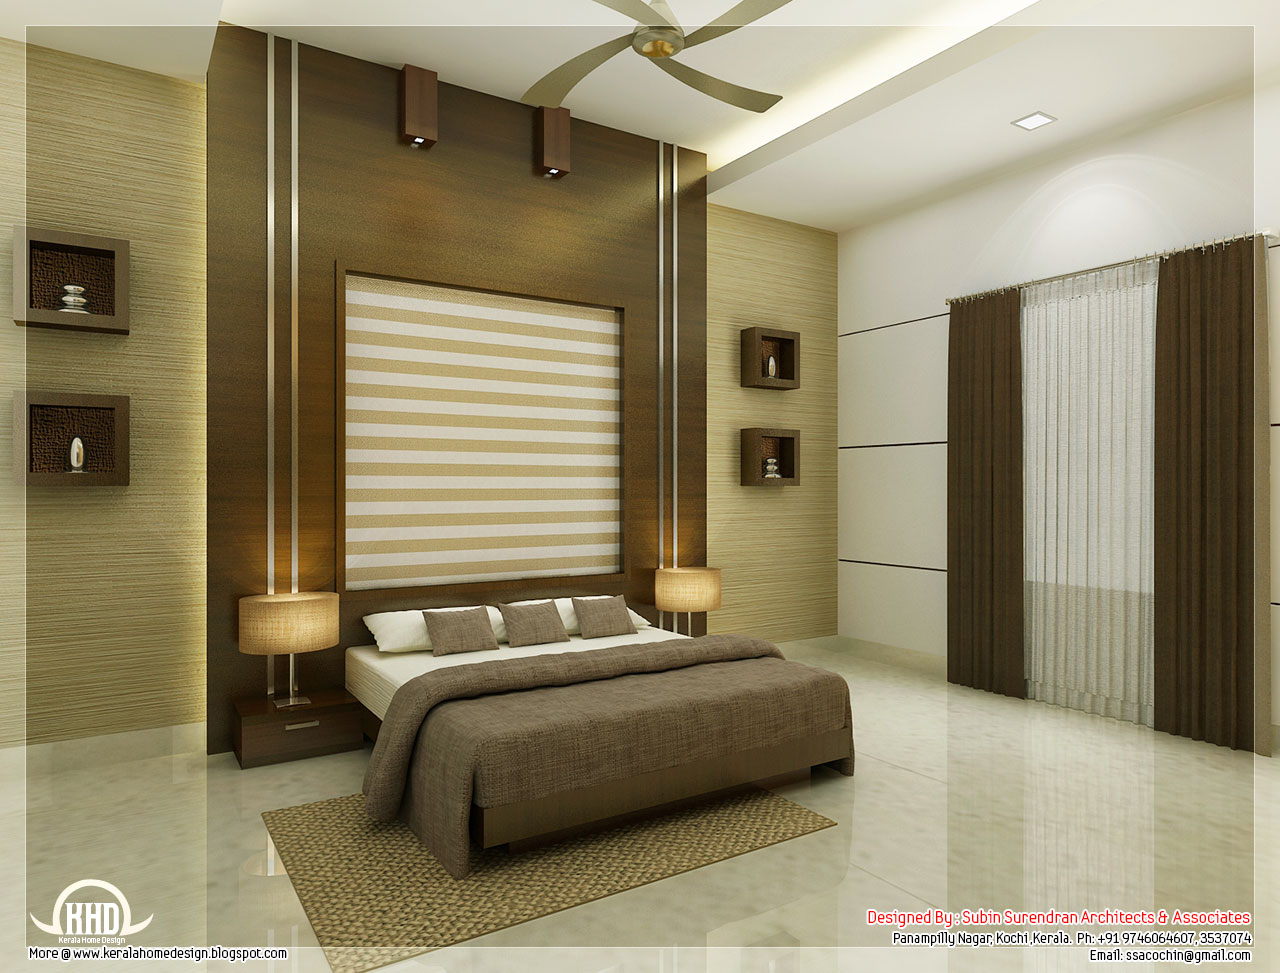 Beautiful bedroom interior designs kerala home design Beautiful home designs inside